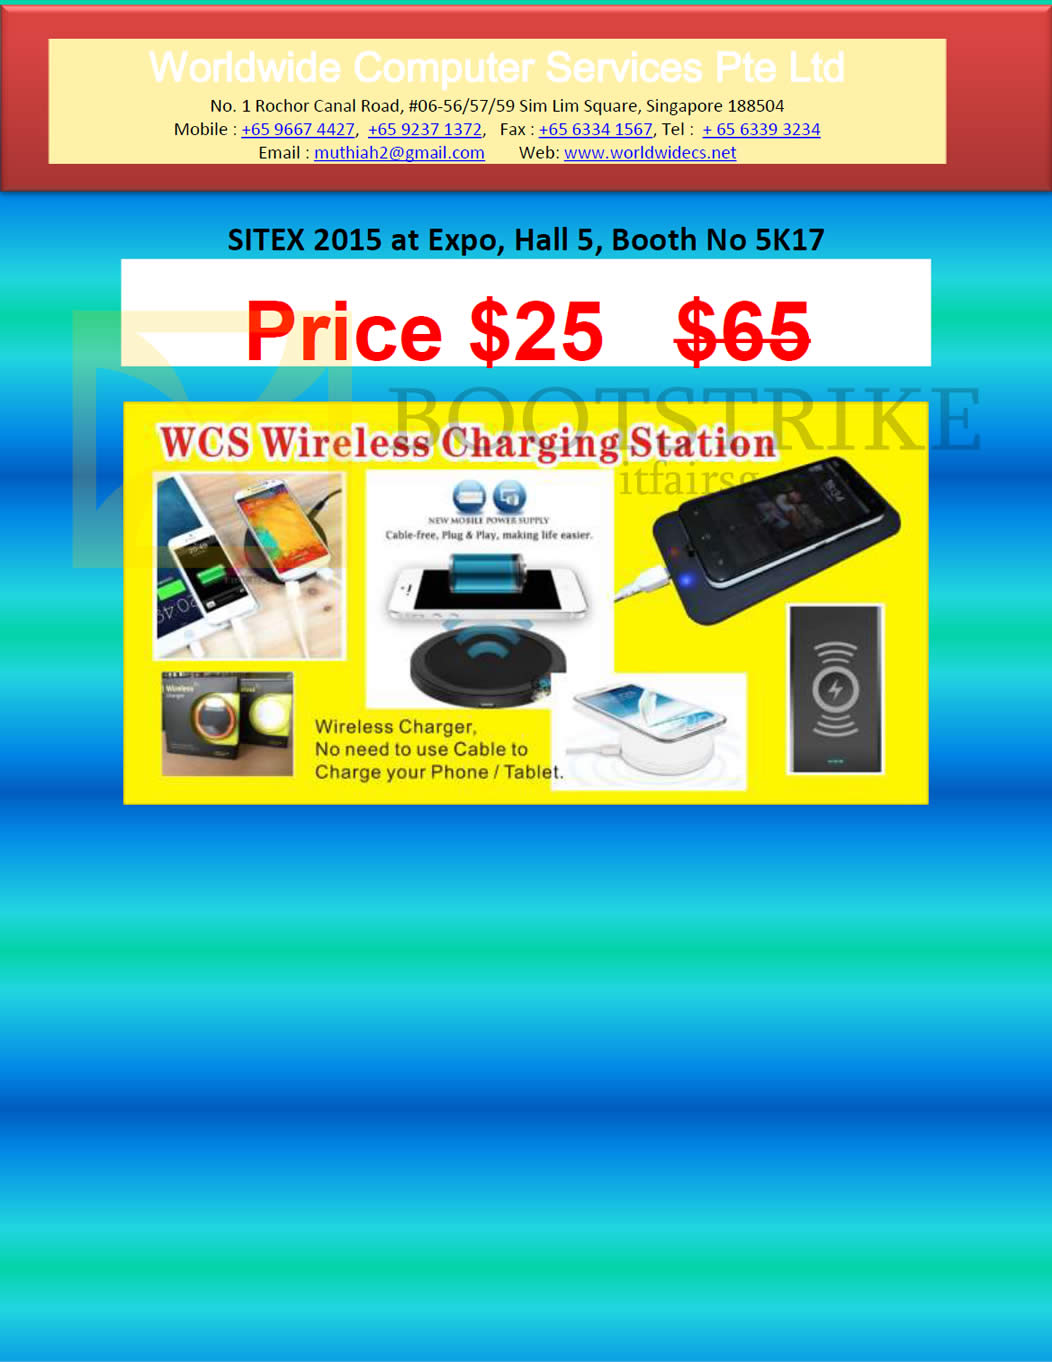 SITEX 2015 price list image brochure of Worldwide Computer Services WCS Wireless Charging Station